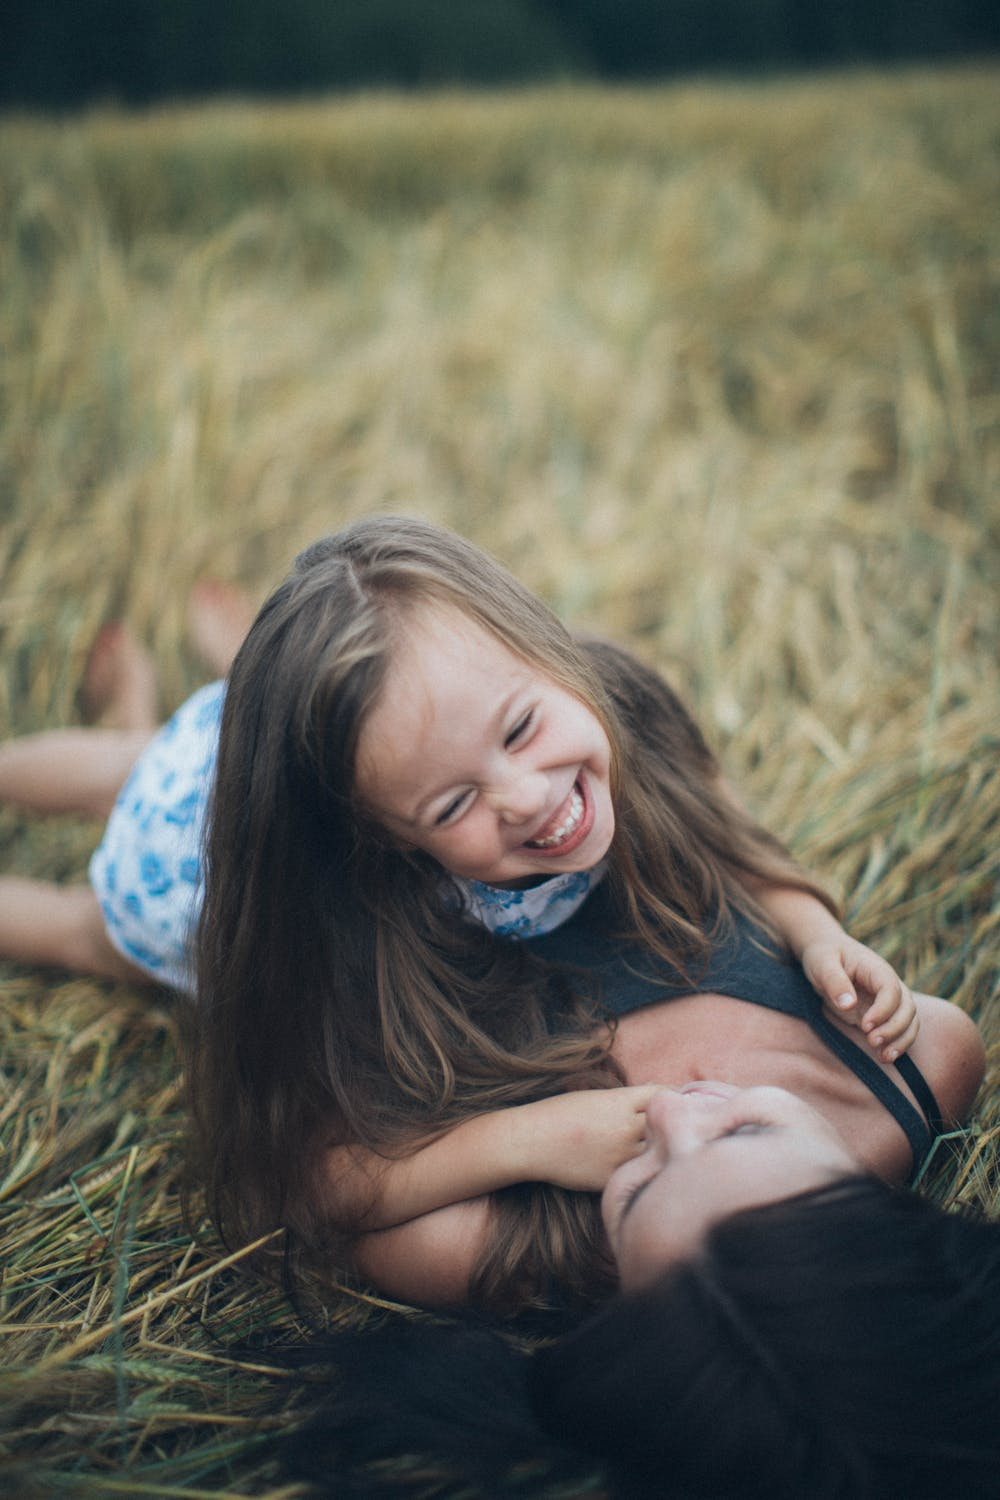 Mother and daughter lying on the lawn | Photo: Pexels